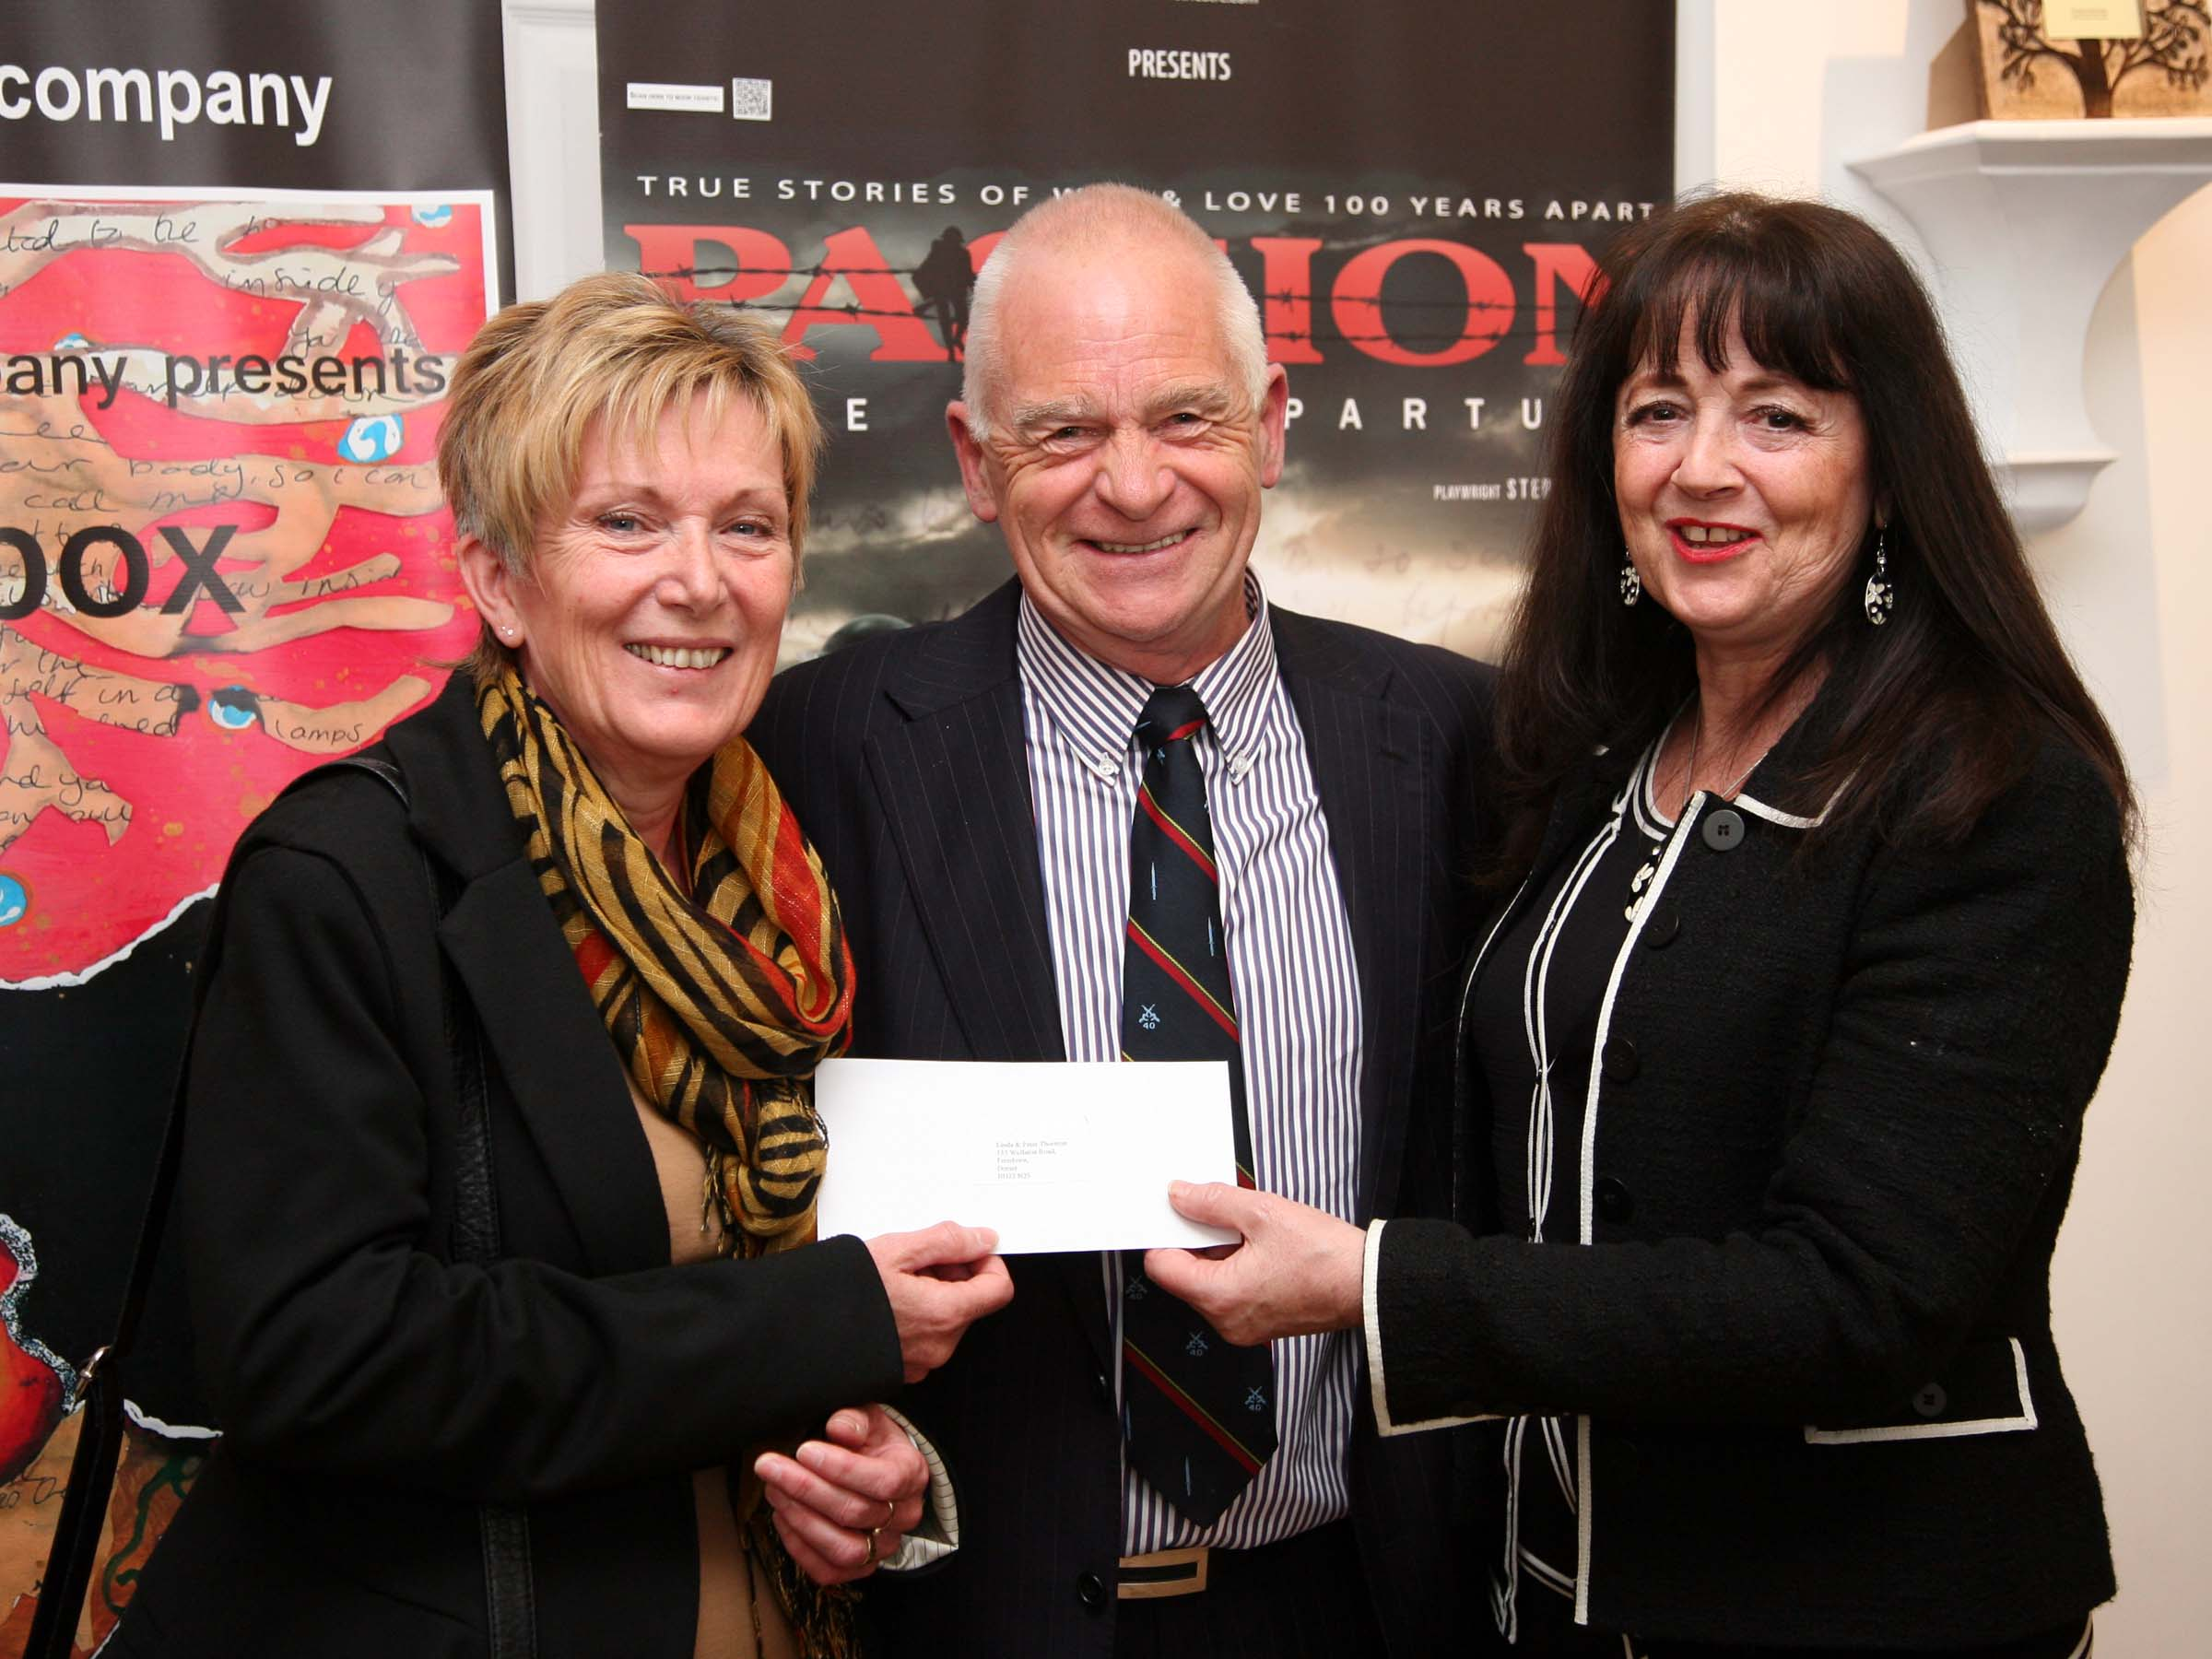 Linda & Peter accept cheque from AsOne